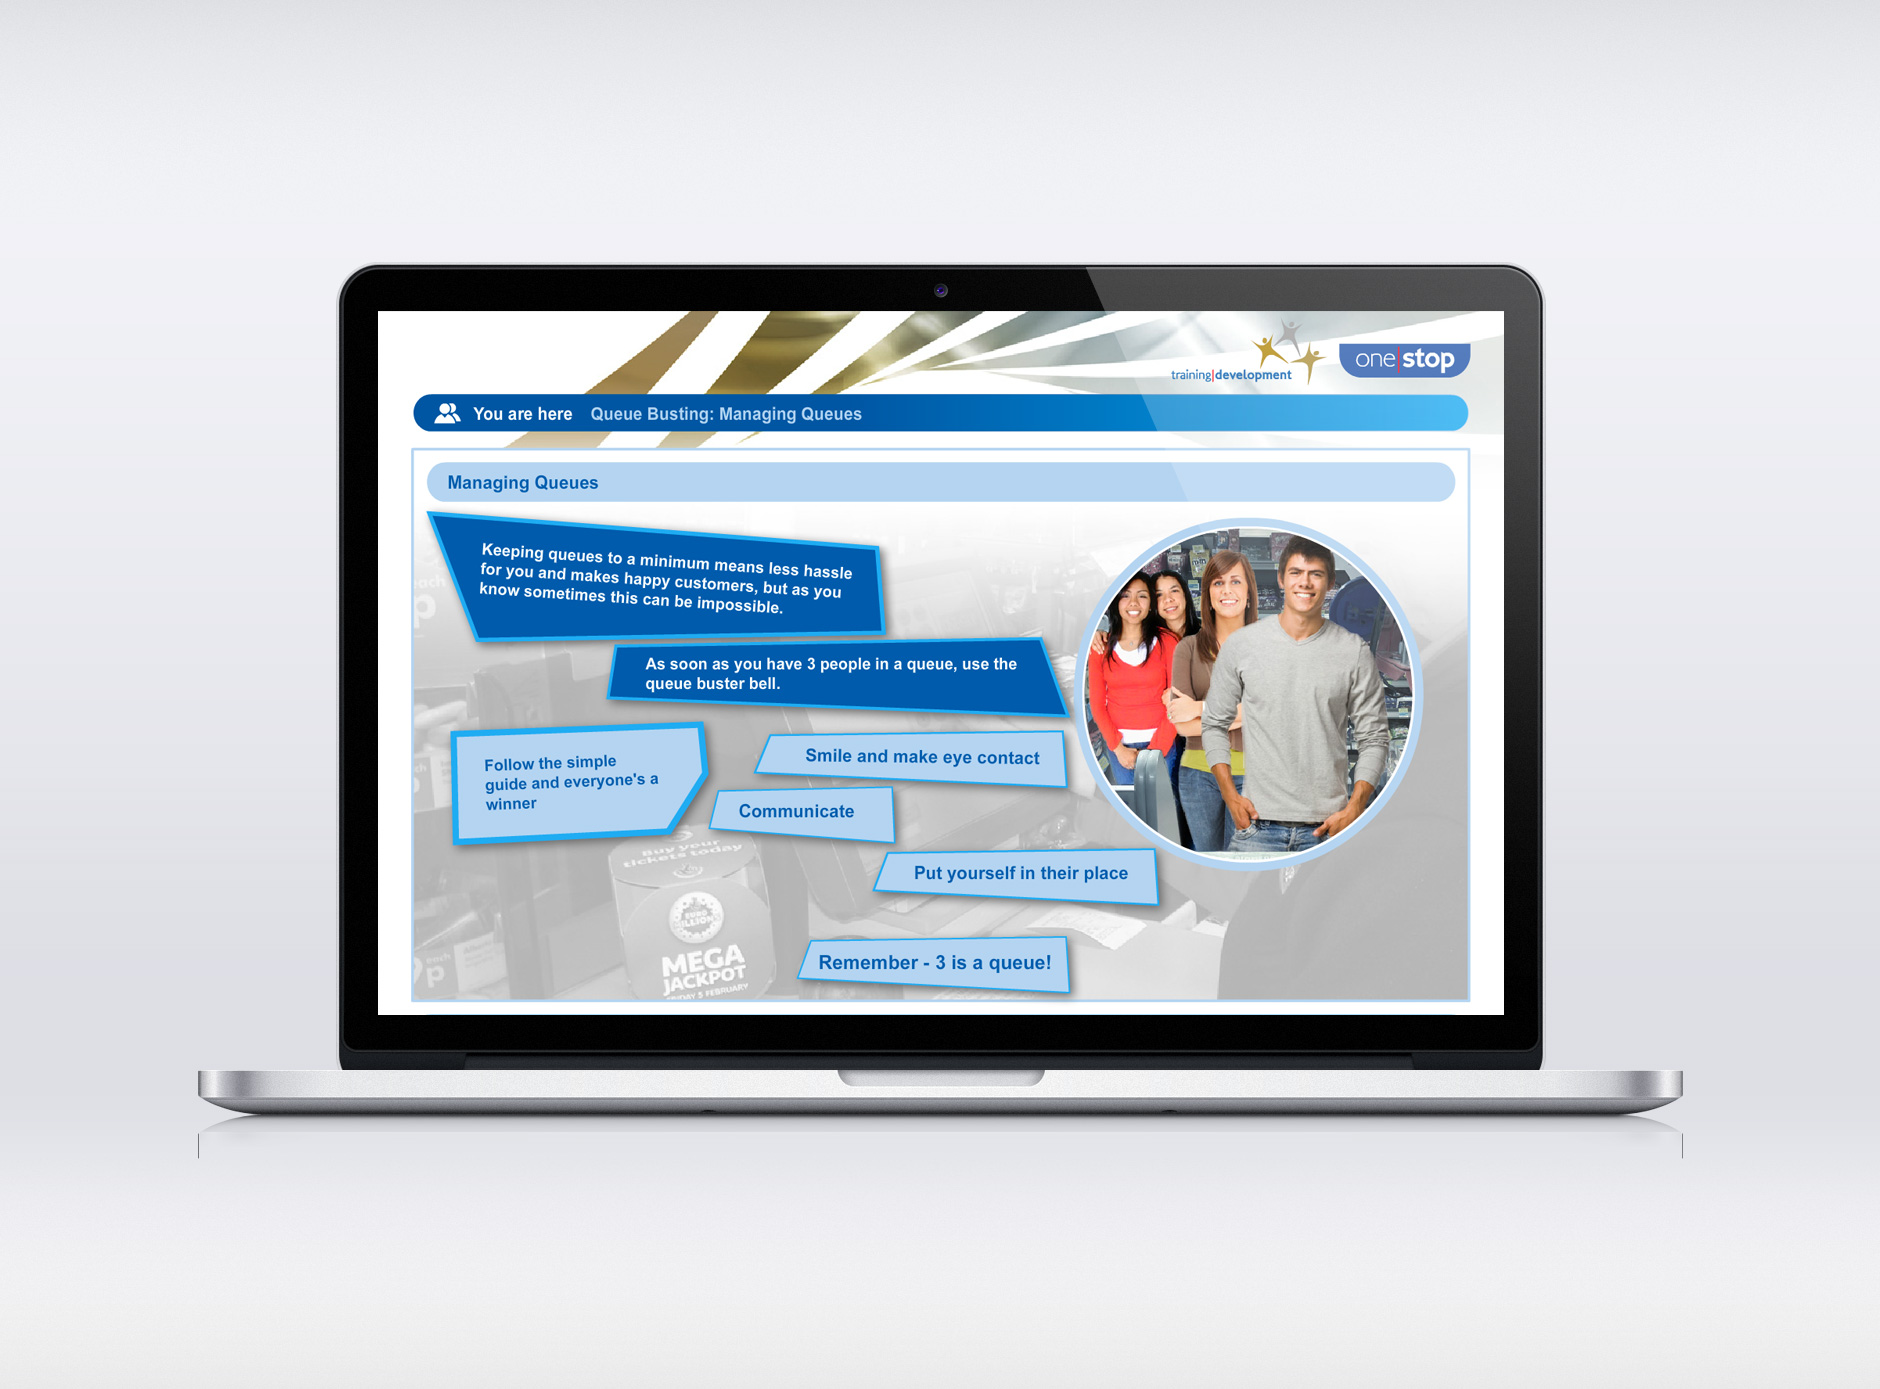 One Stop eLearning application